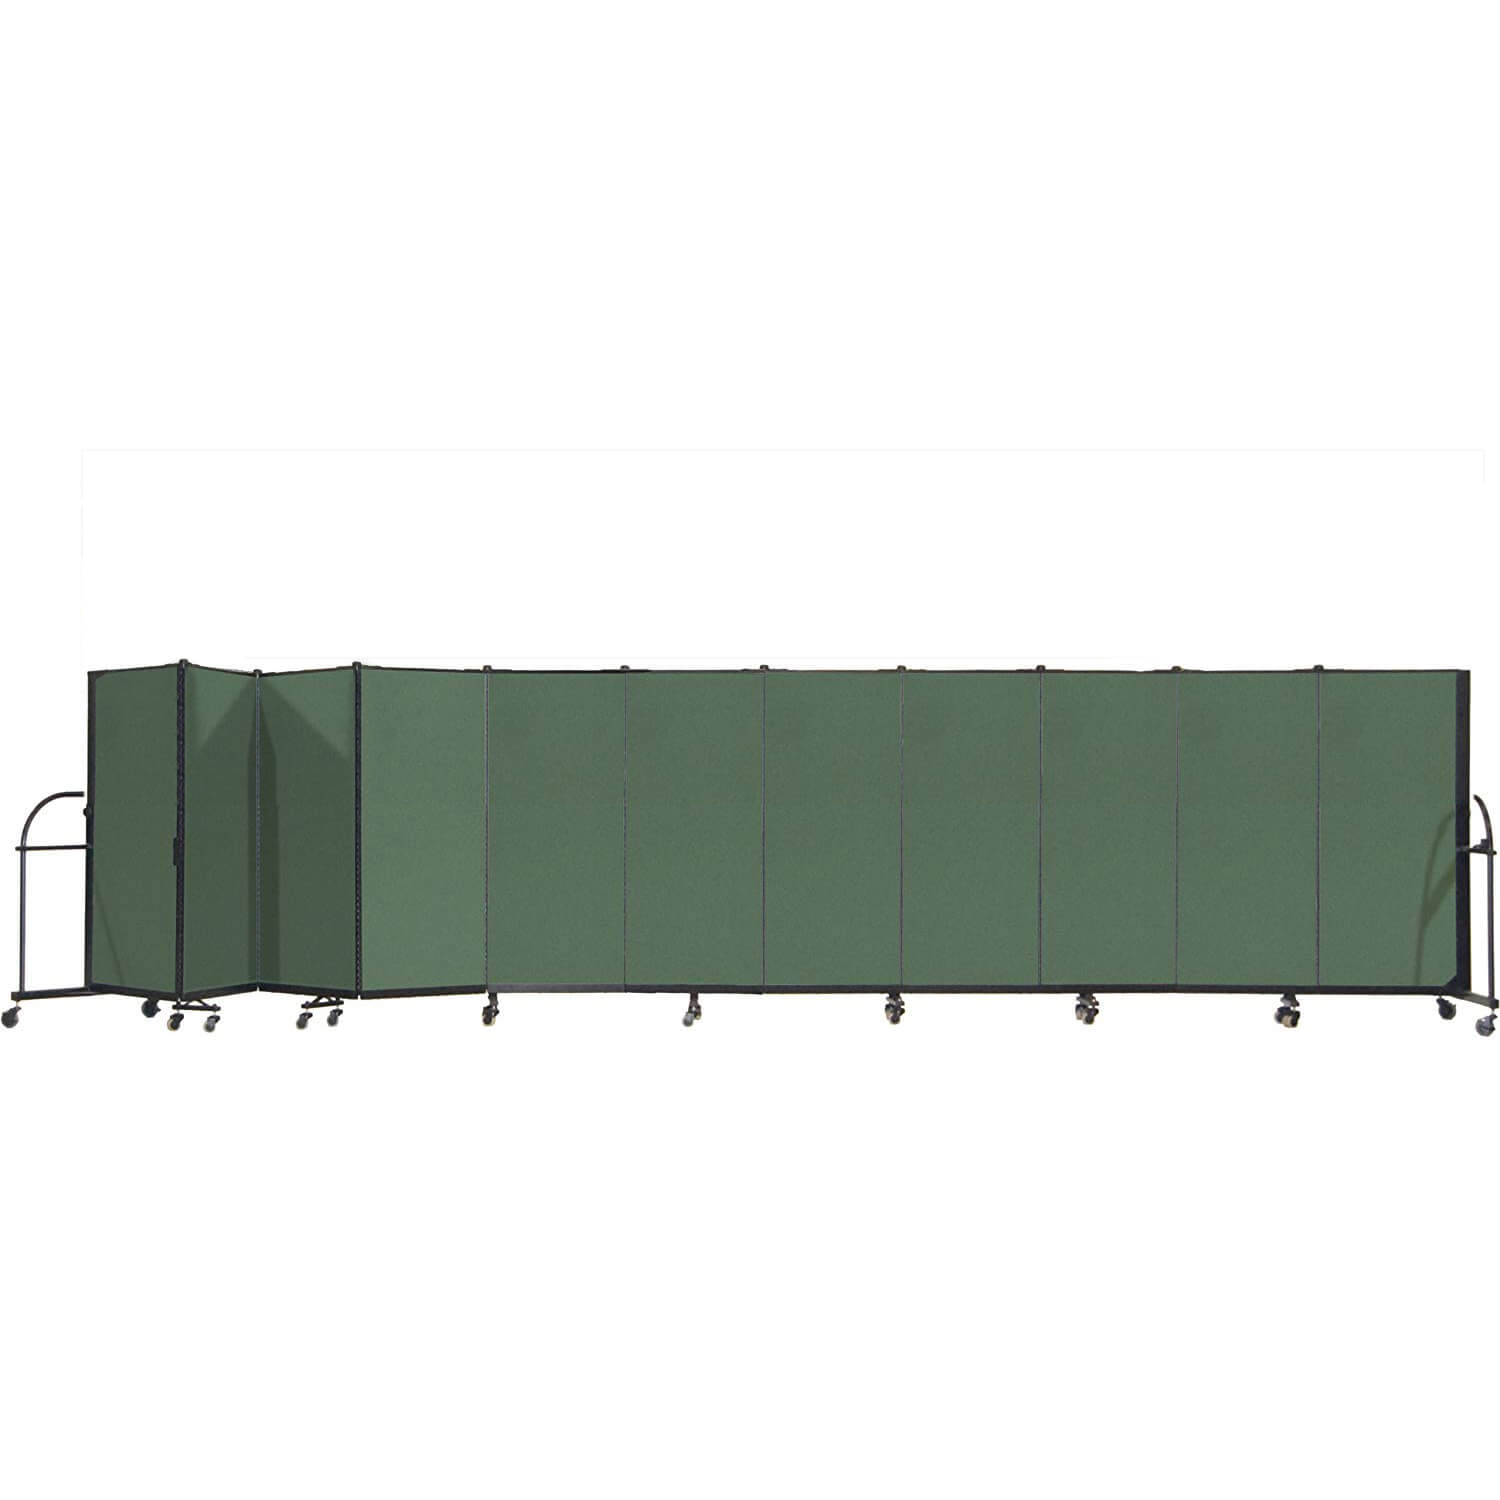 Panel room dividers CUB QSCFSL4011DN RCS 1 2